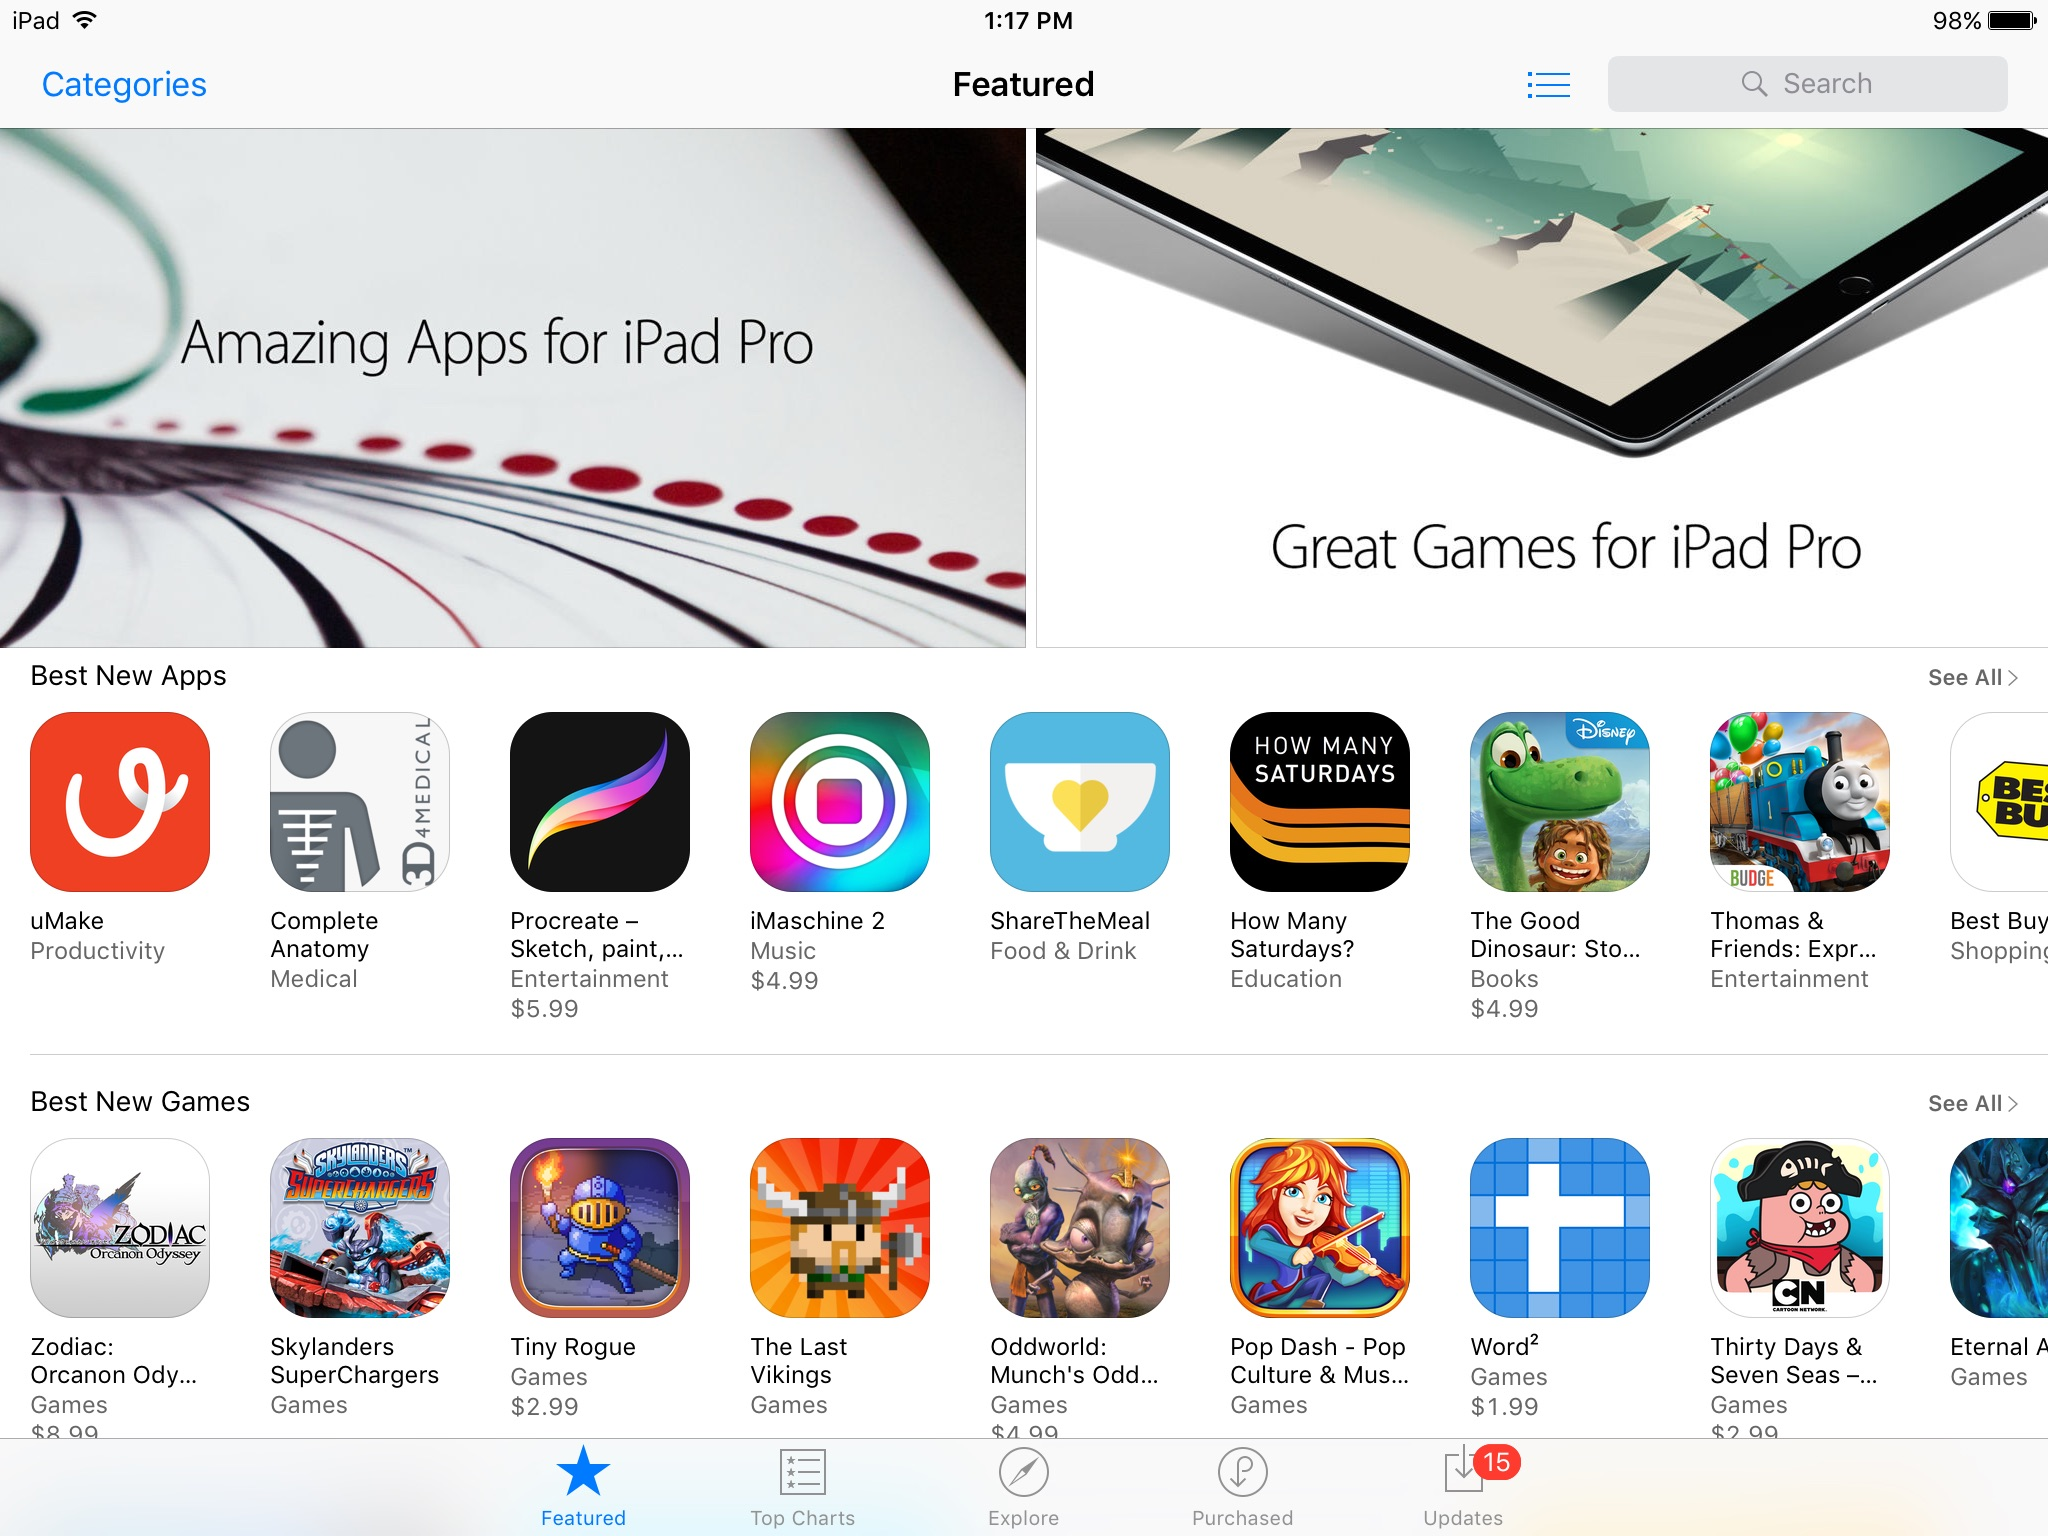 Line Drawing Game App : Apple promotes apps and games for ipad pro on app store